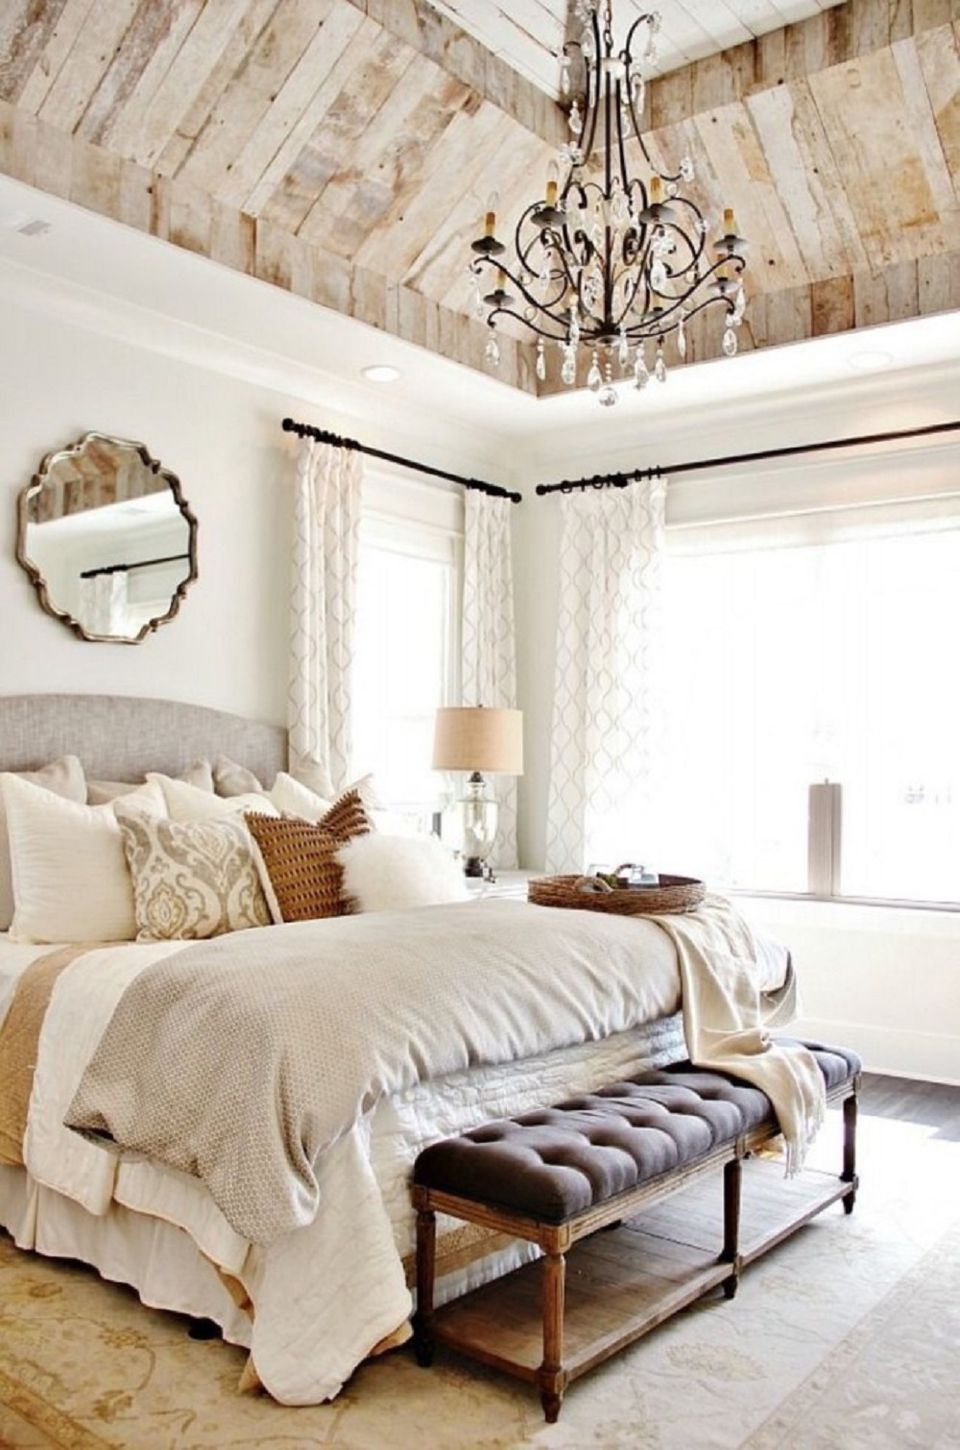 French country bedroom today. French Country Bedroom Decorating Ideas and Photos